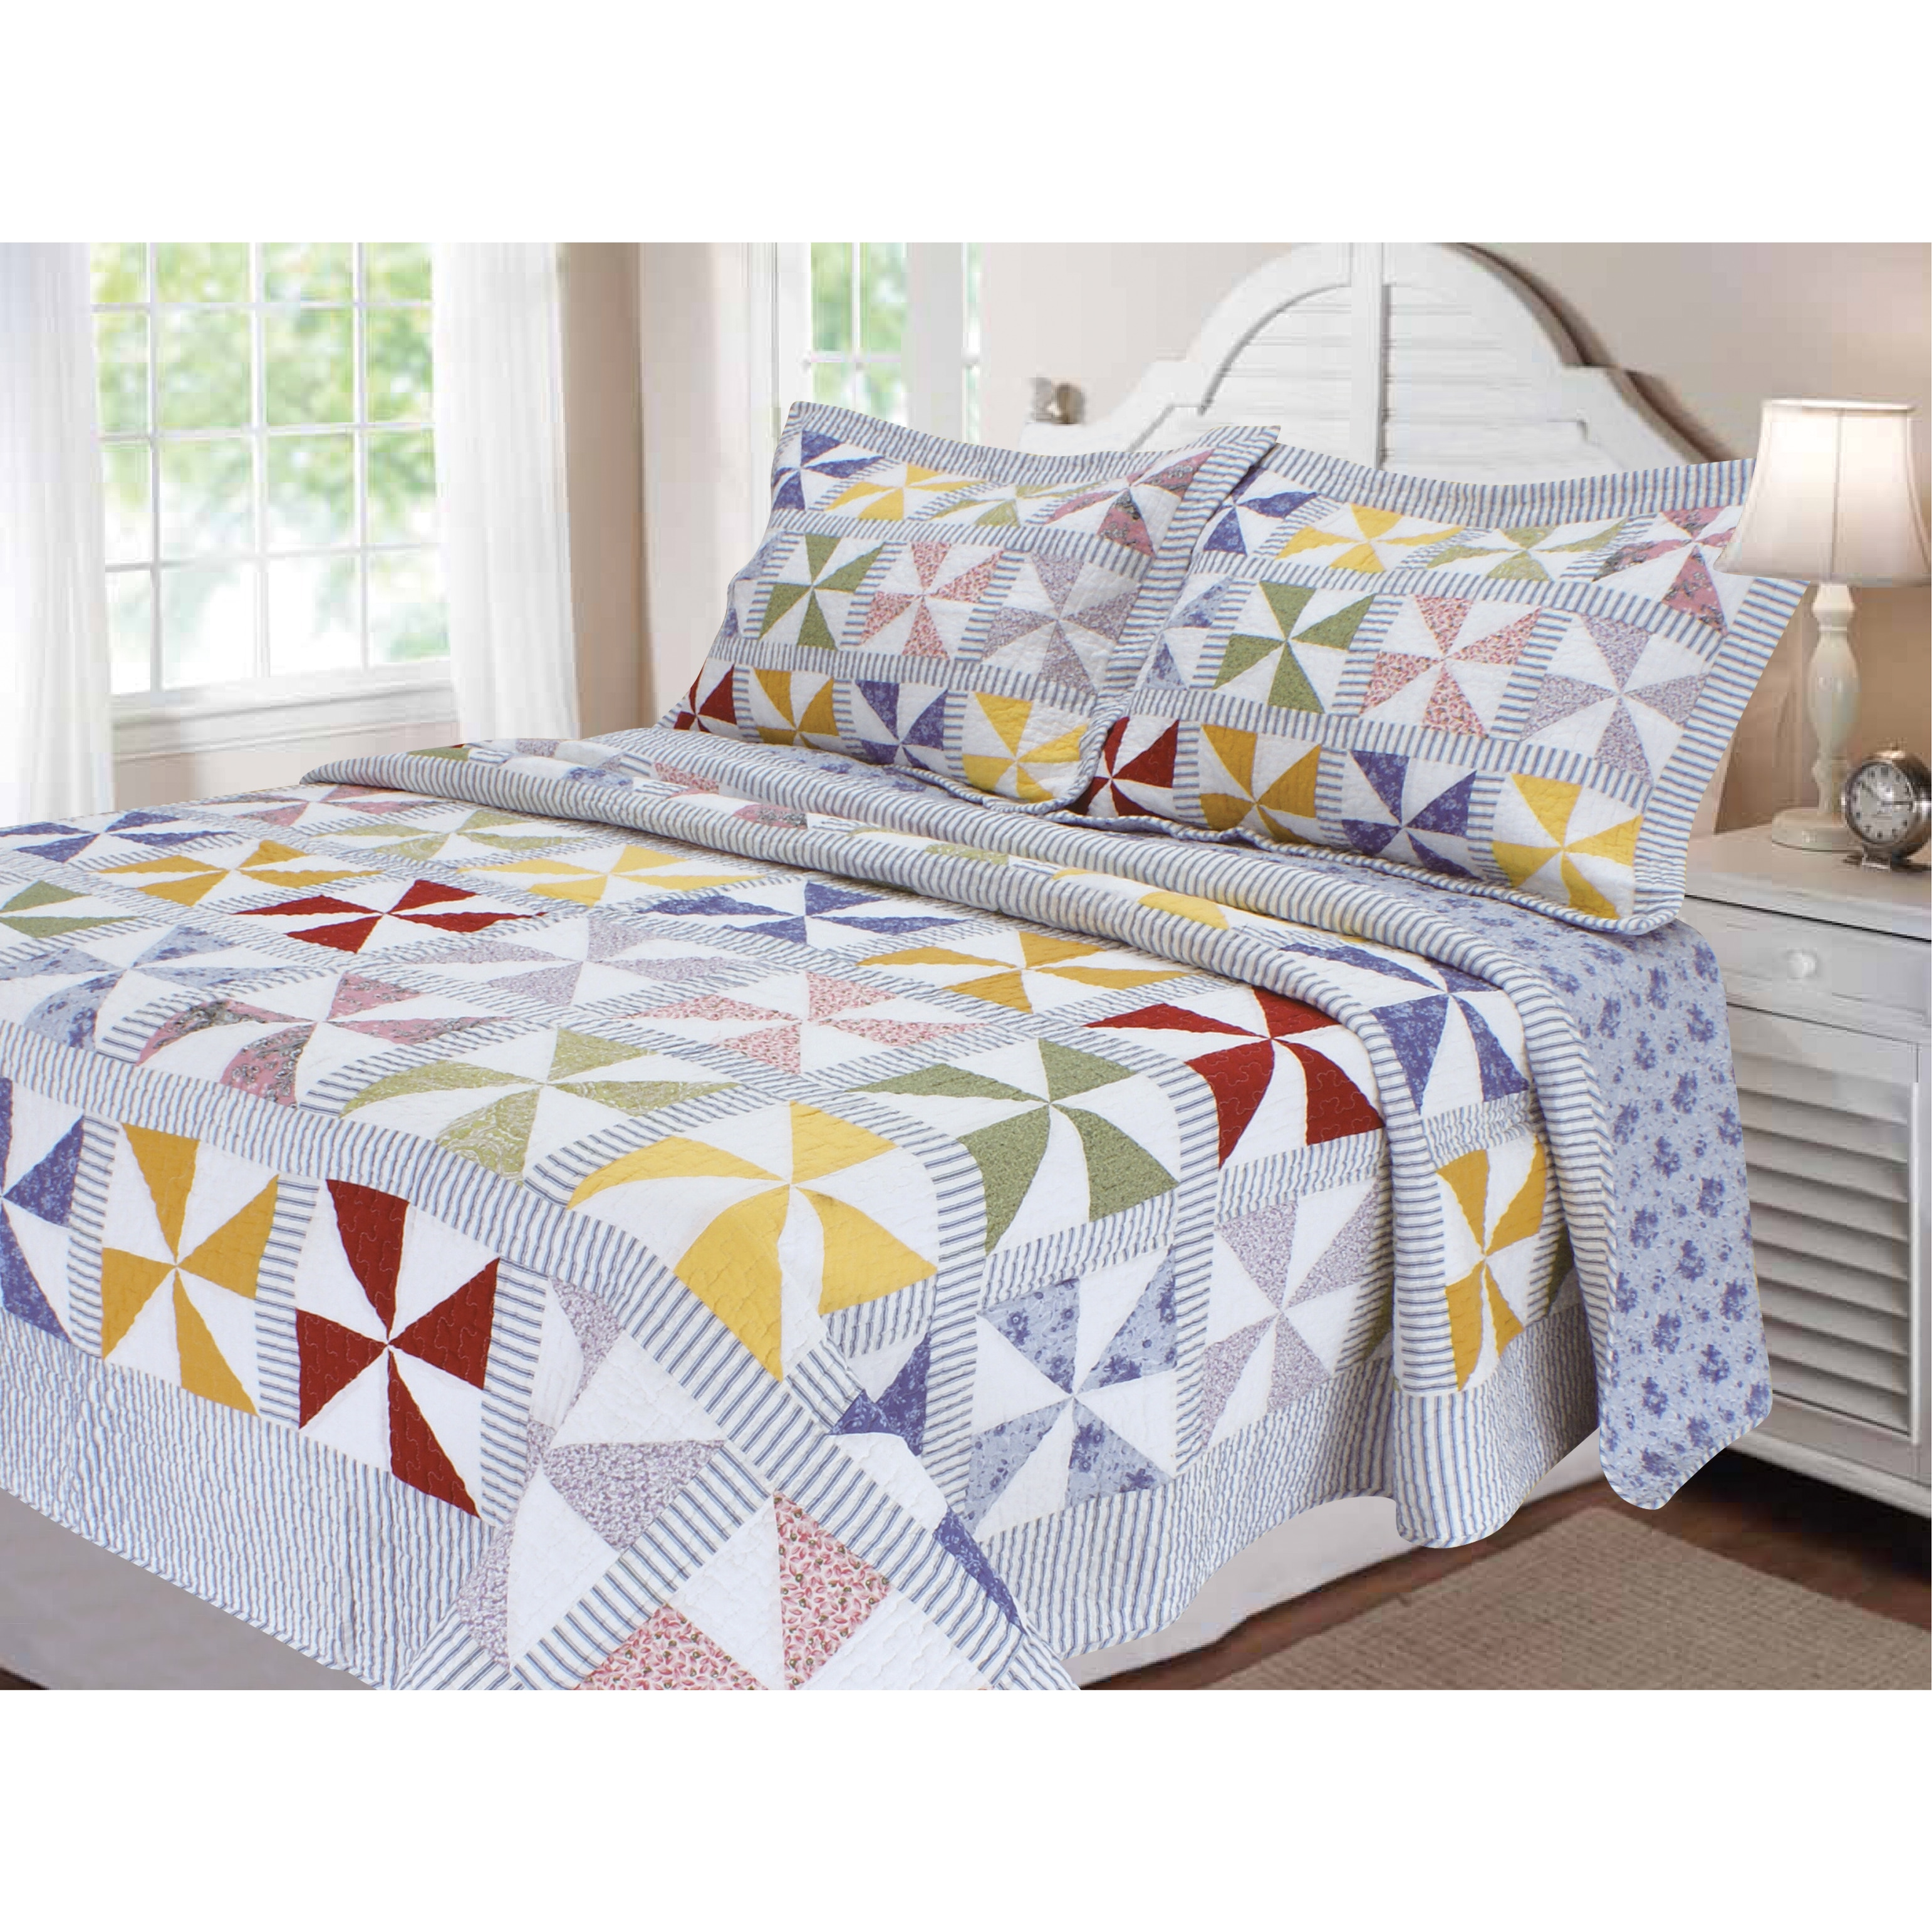 Copper Grove Turnbull Patchwork Carnival Pinwheel Quilt